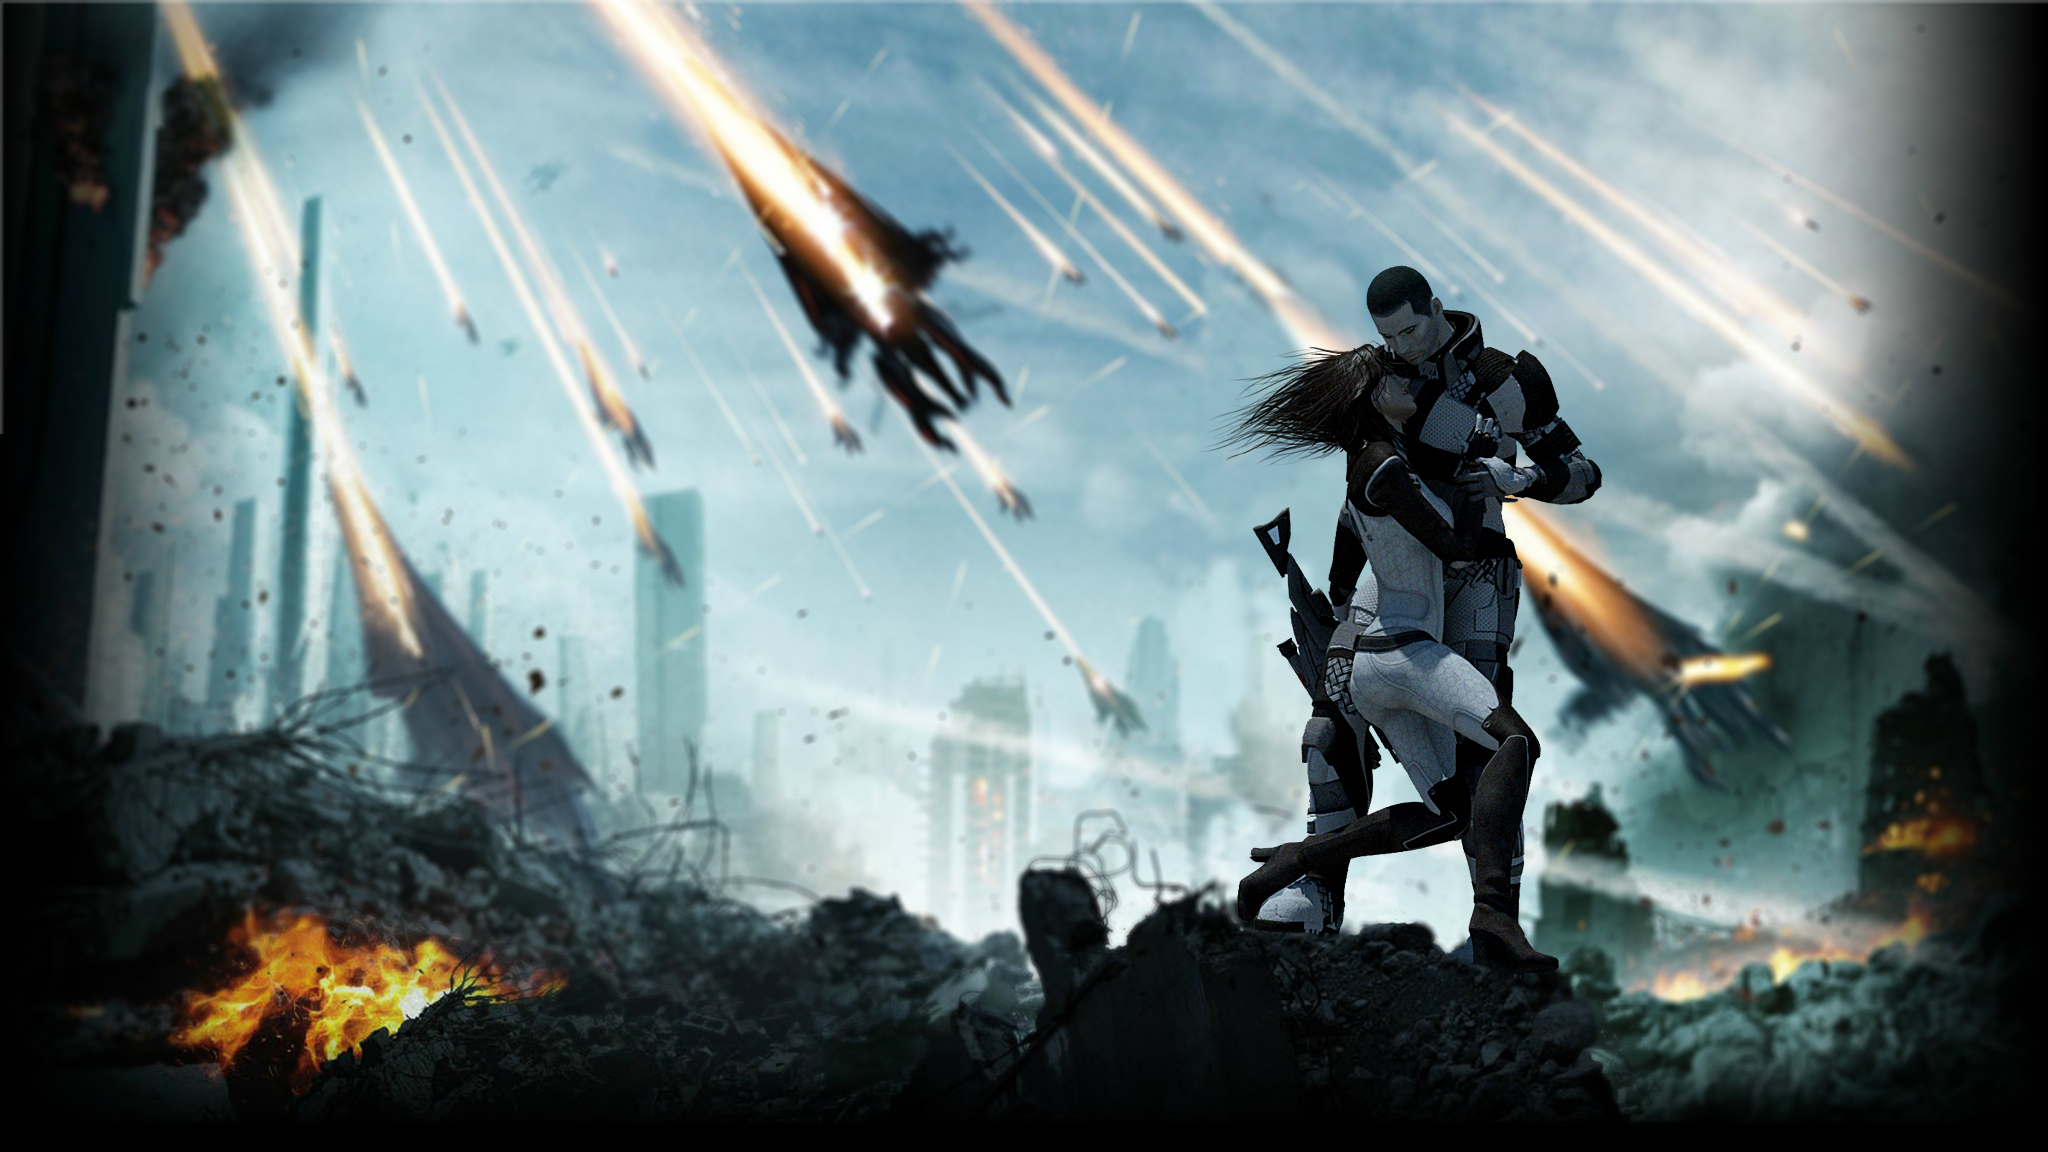 HD Mass Effect Wallpaper